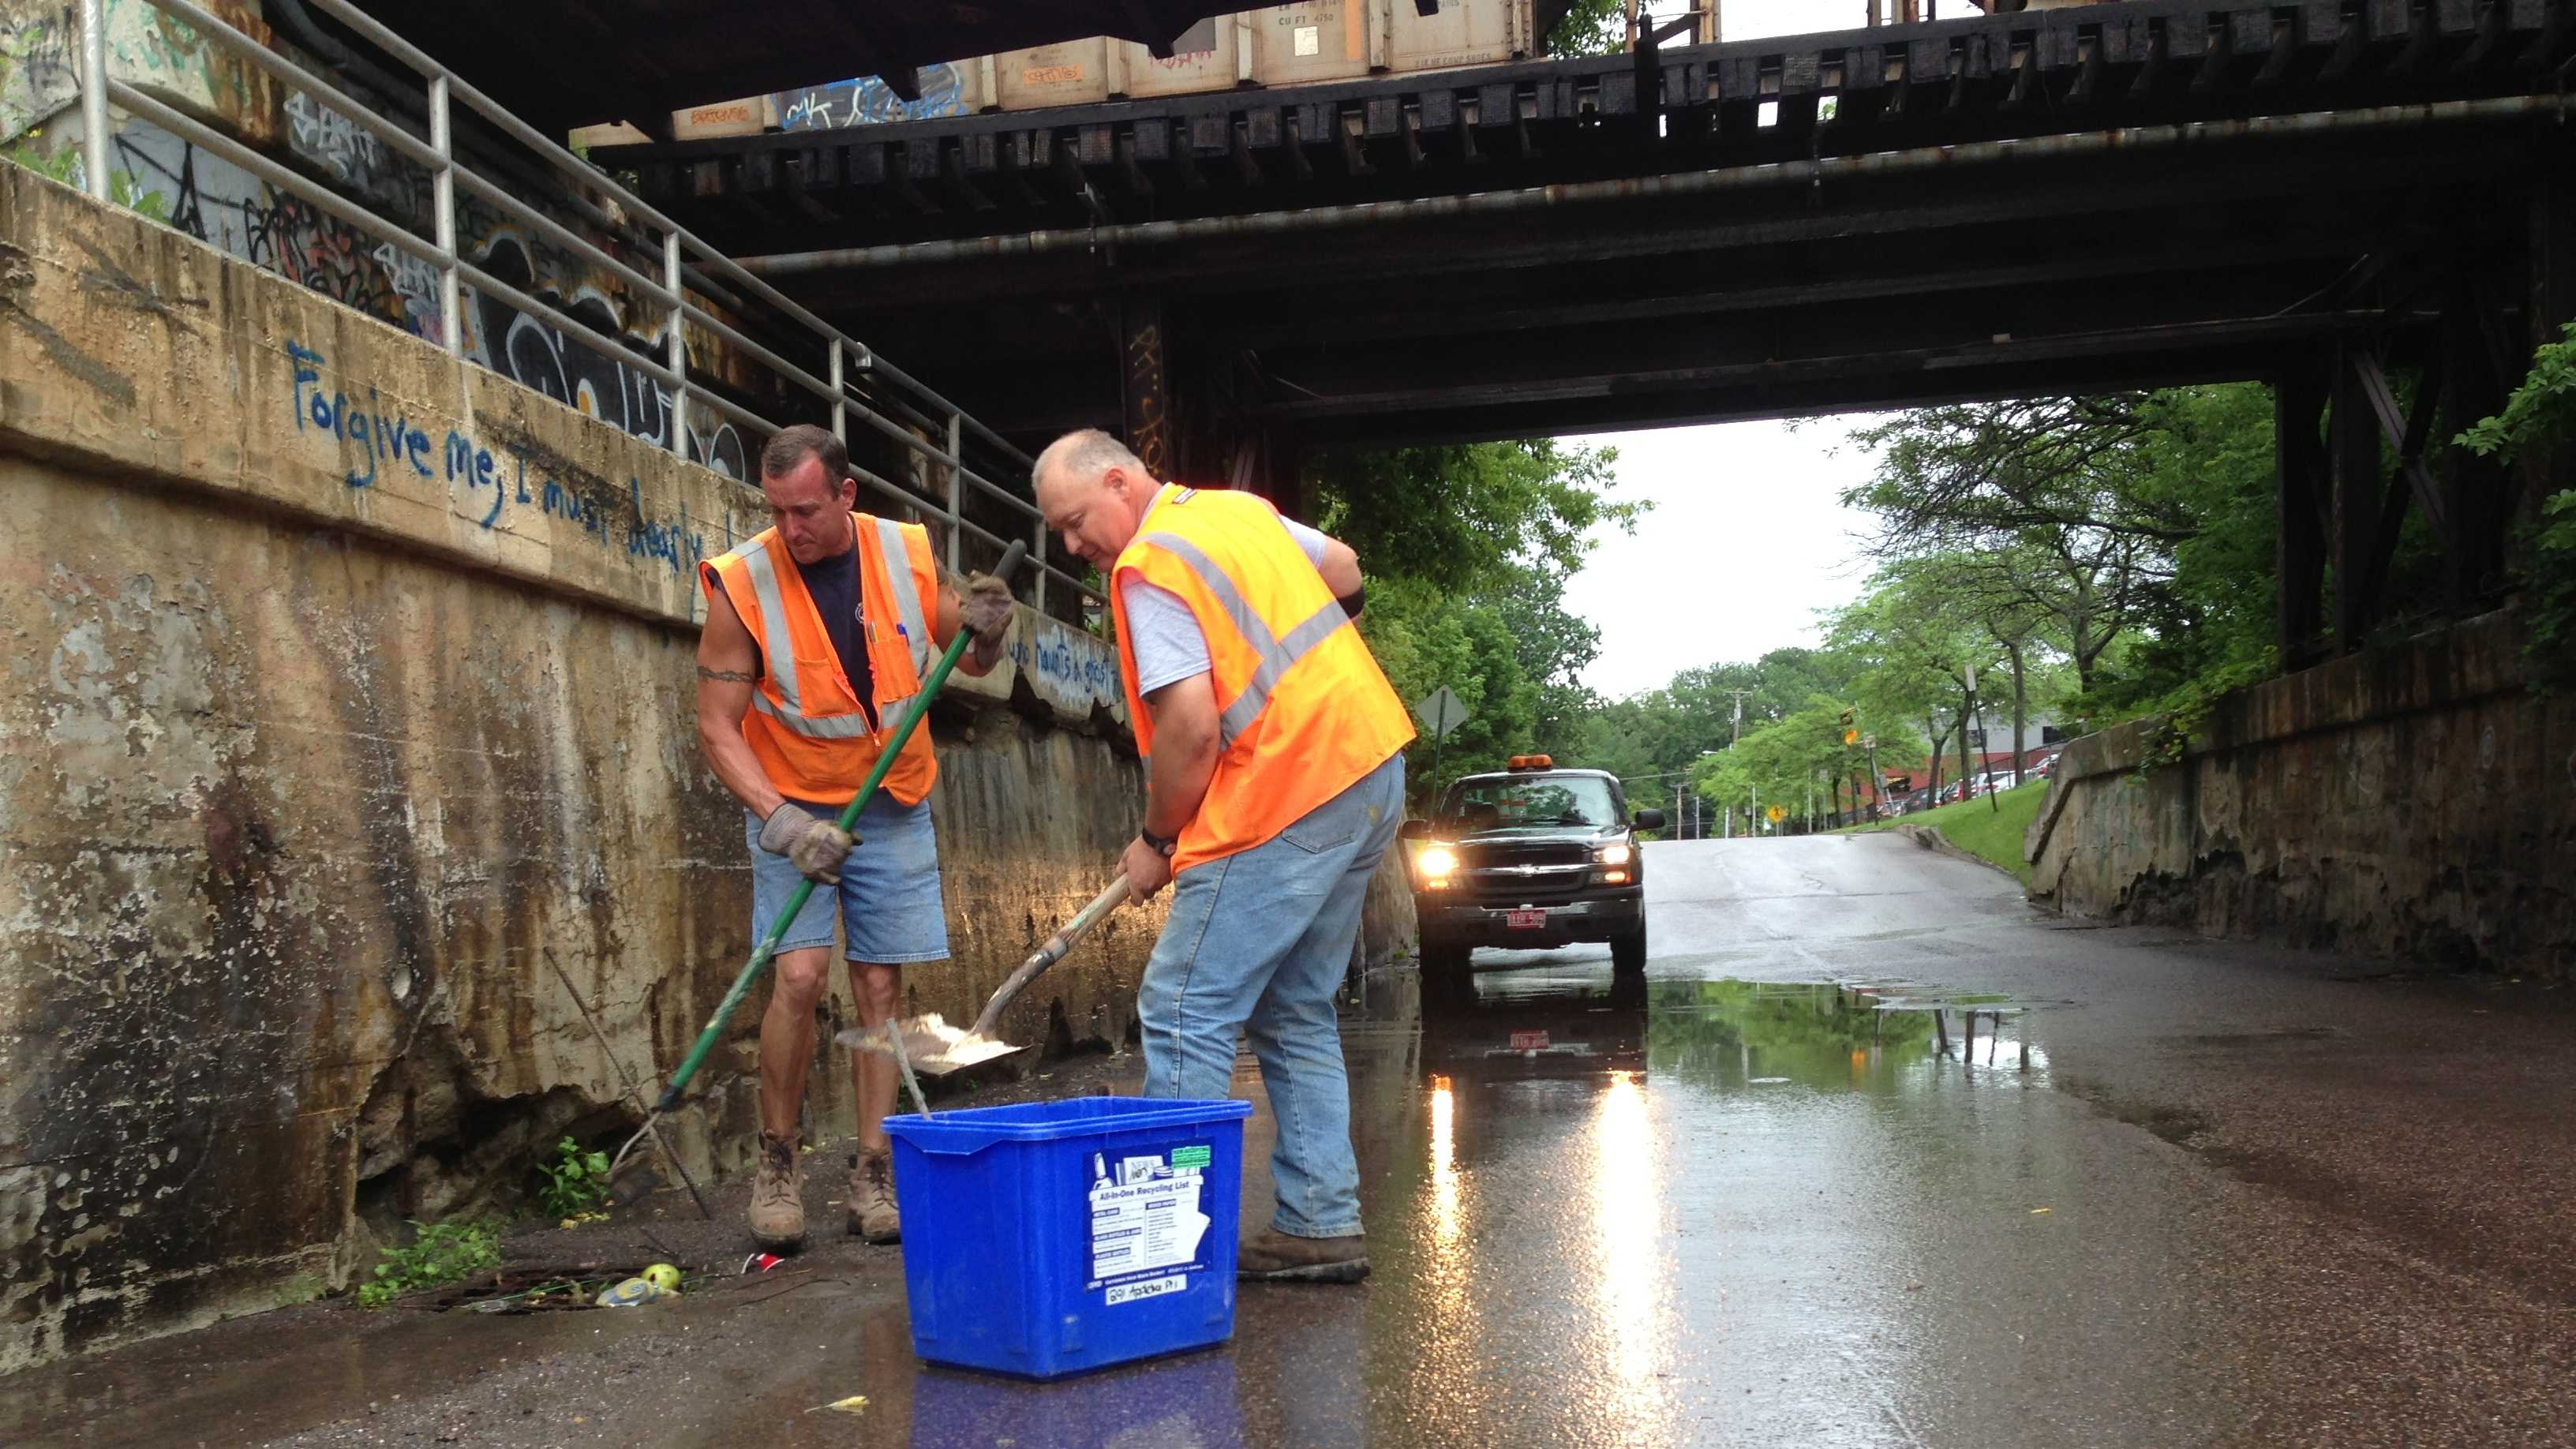 Department of Public Works crew members clean out catch basins clogged with debris.